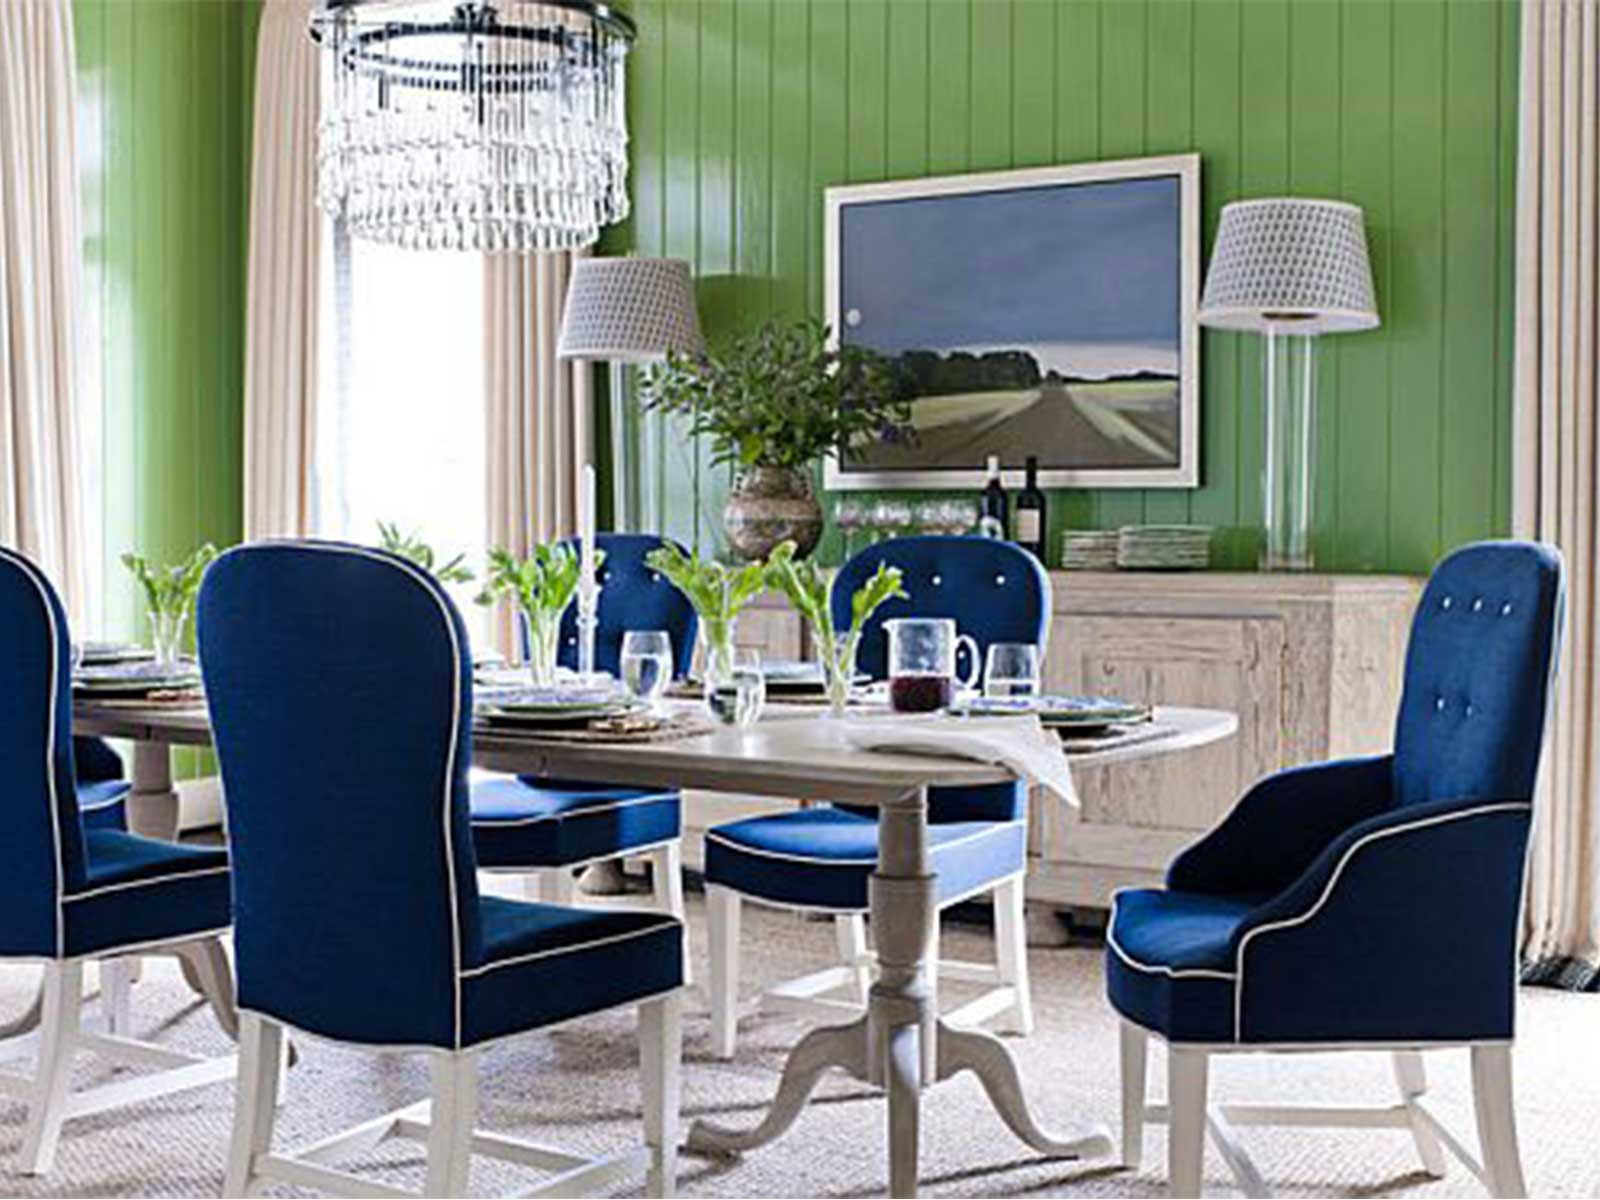 Famed Green Blue Upholstered Chairs Homesfeed Blue Chairs Next Blue Chairs Target Room Blue Upholstered Chairs Long Table Chandelier Cabinet Standing Lamp houzz-02 Blue Dining Chairs